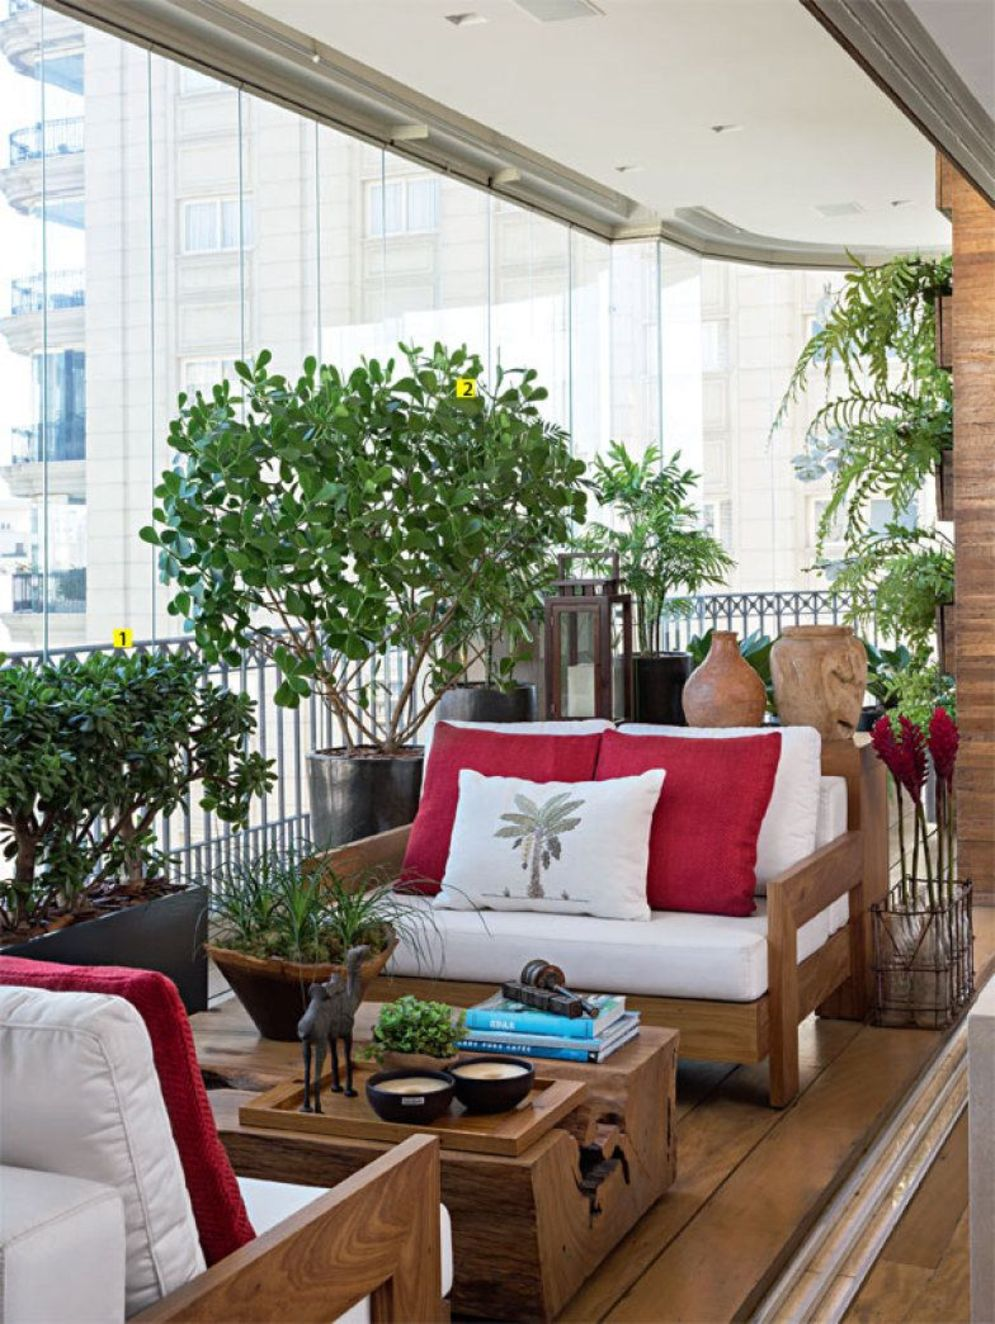 Brilliant apartment balcony ideas converted into cozy living space Image 16